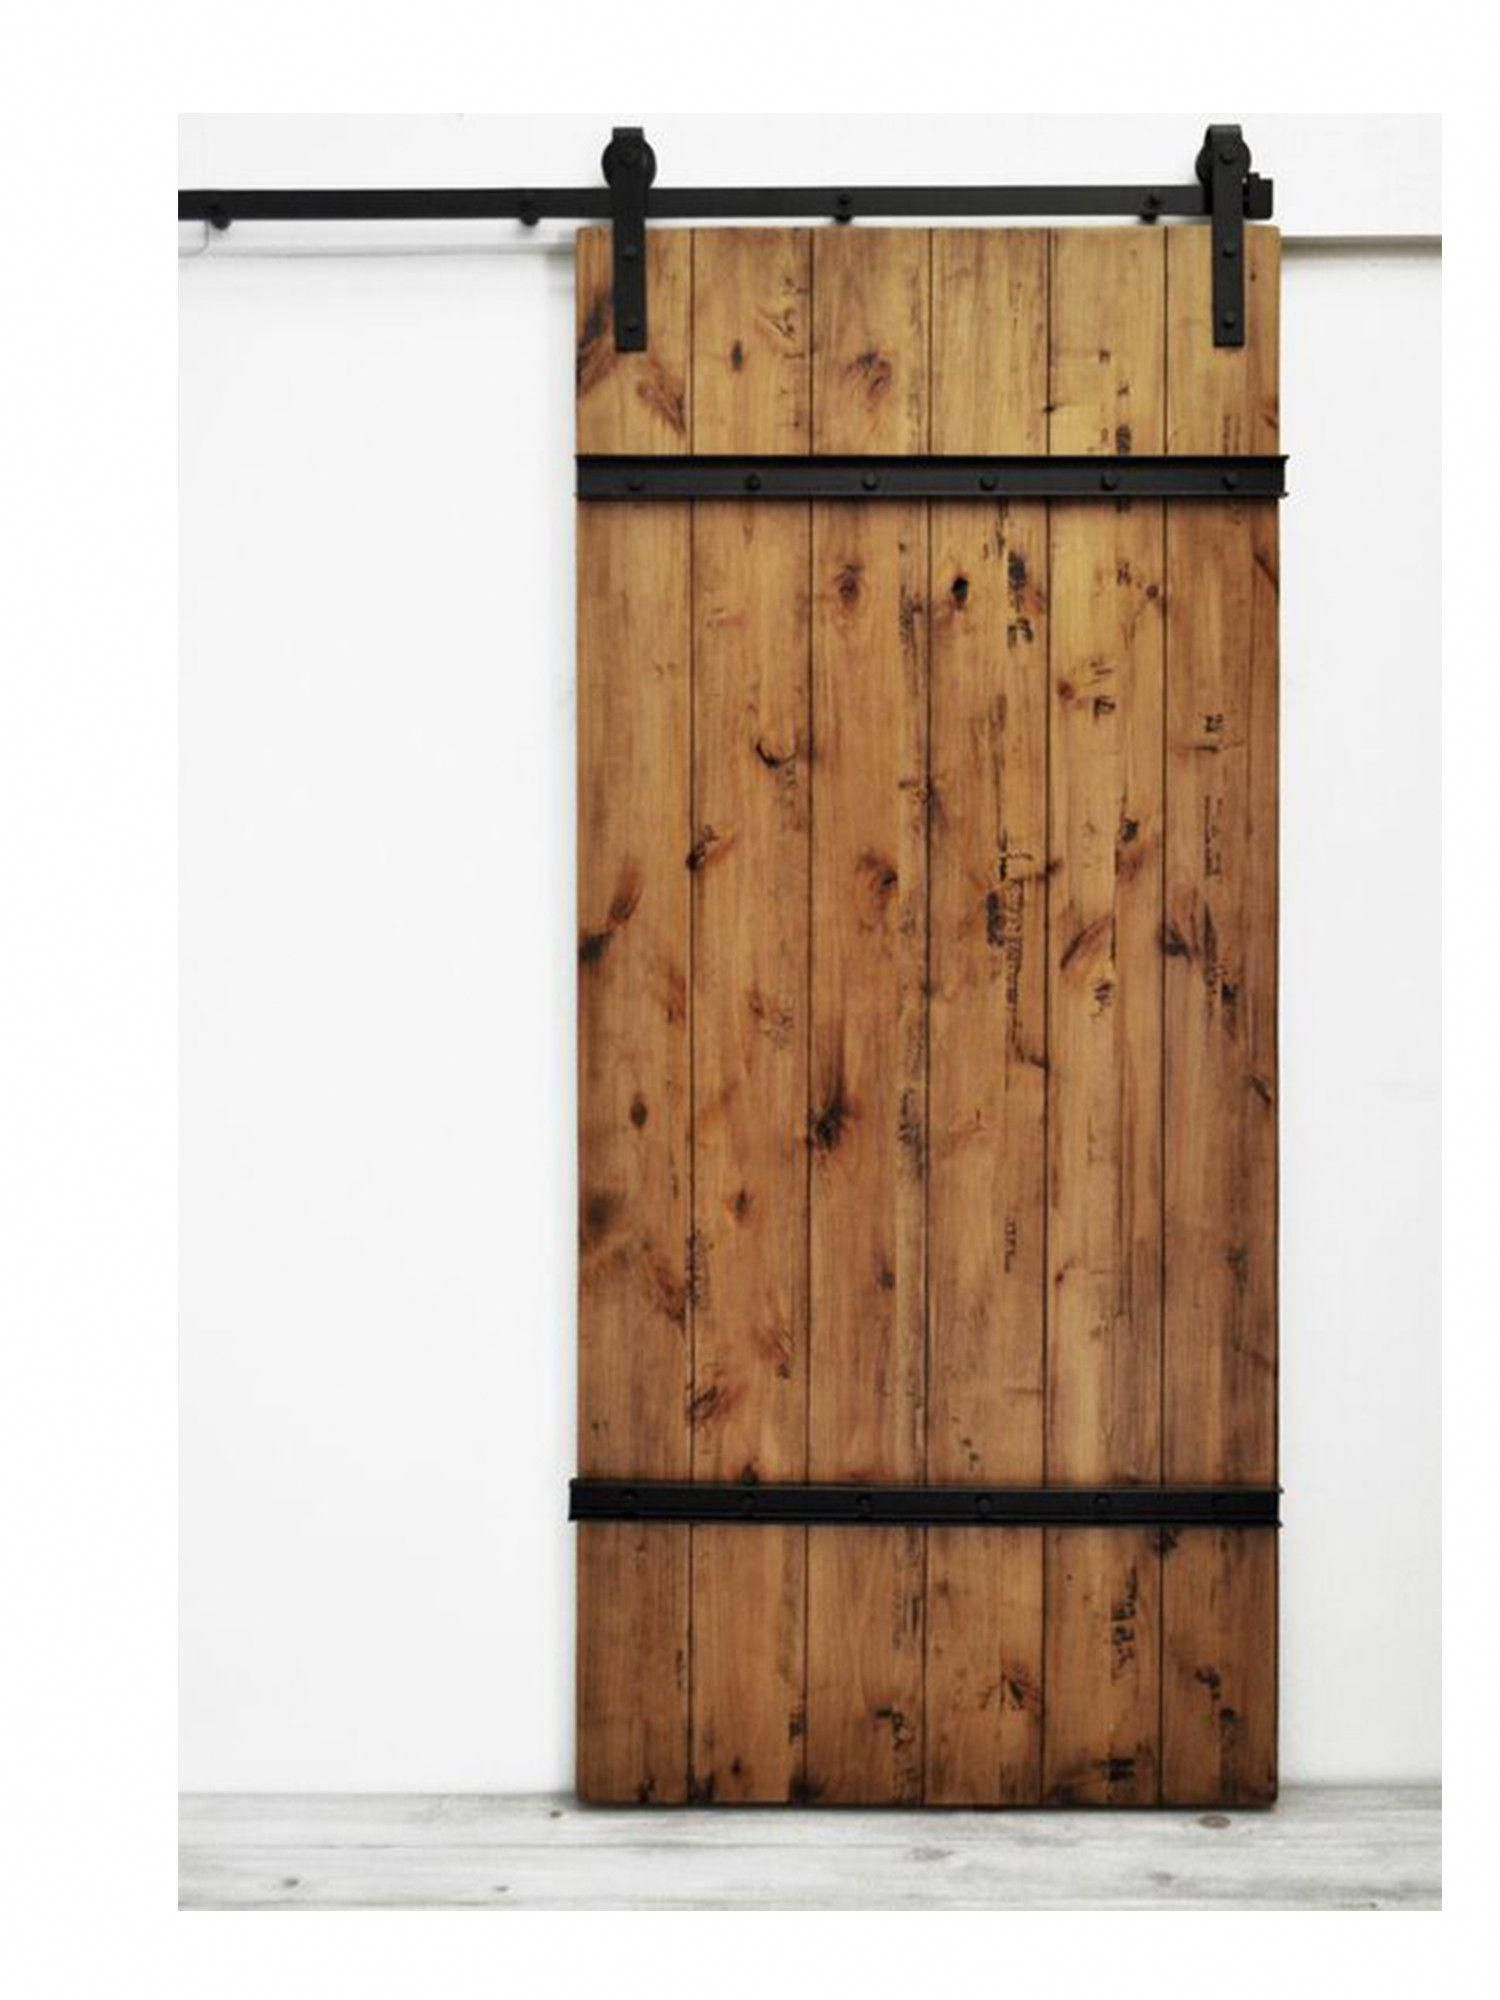 Exterior Sliding Barn Door Kit Interior Double Barn Door Hardware Old Sliding Barn Door Hard Interior Barn Doors Wood Doors Interior Sliding Doors Interior